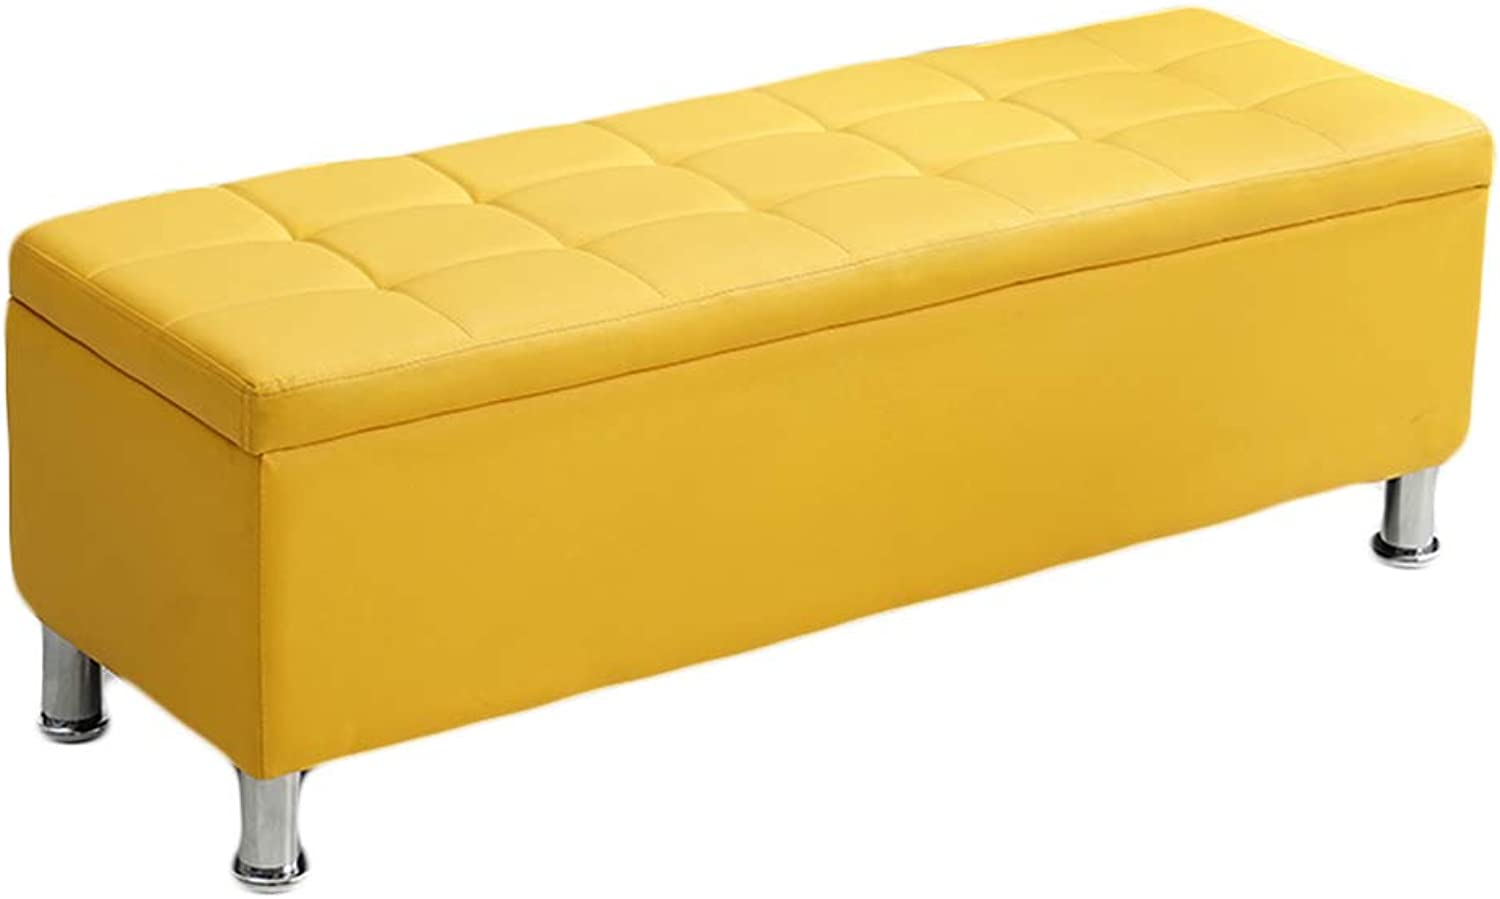 CAIJUN Footstool Multifunction Soft Storage Sofa Solid Wood Frame Thick Sponge Comfortable Non-Slip Gift, 12 colors, 4 Sizes (color   Yellow, Size   40X40X45CM)